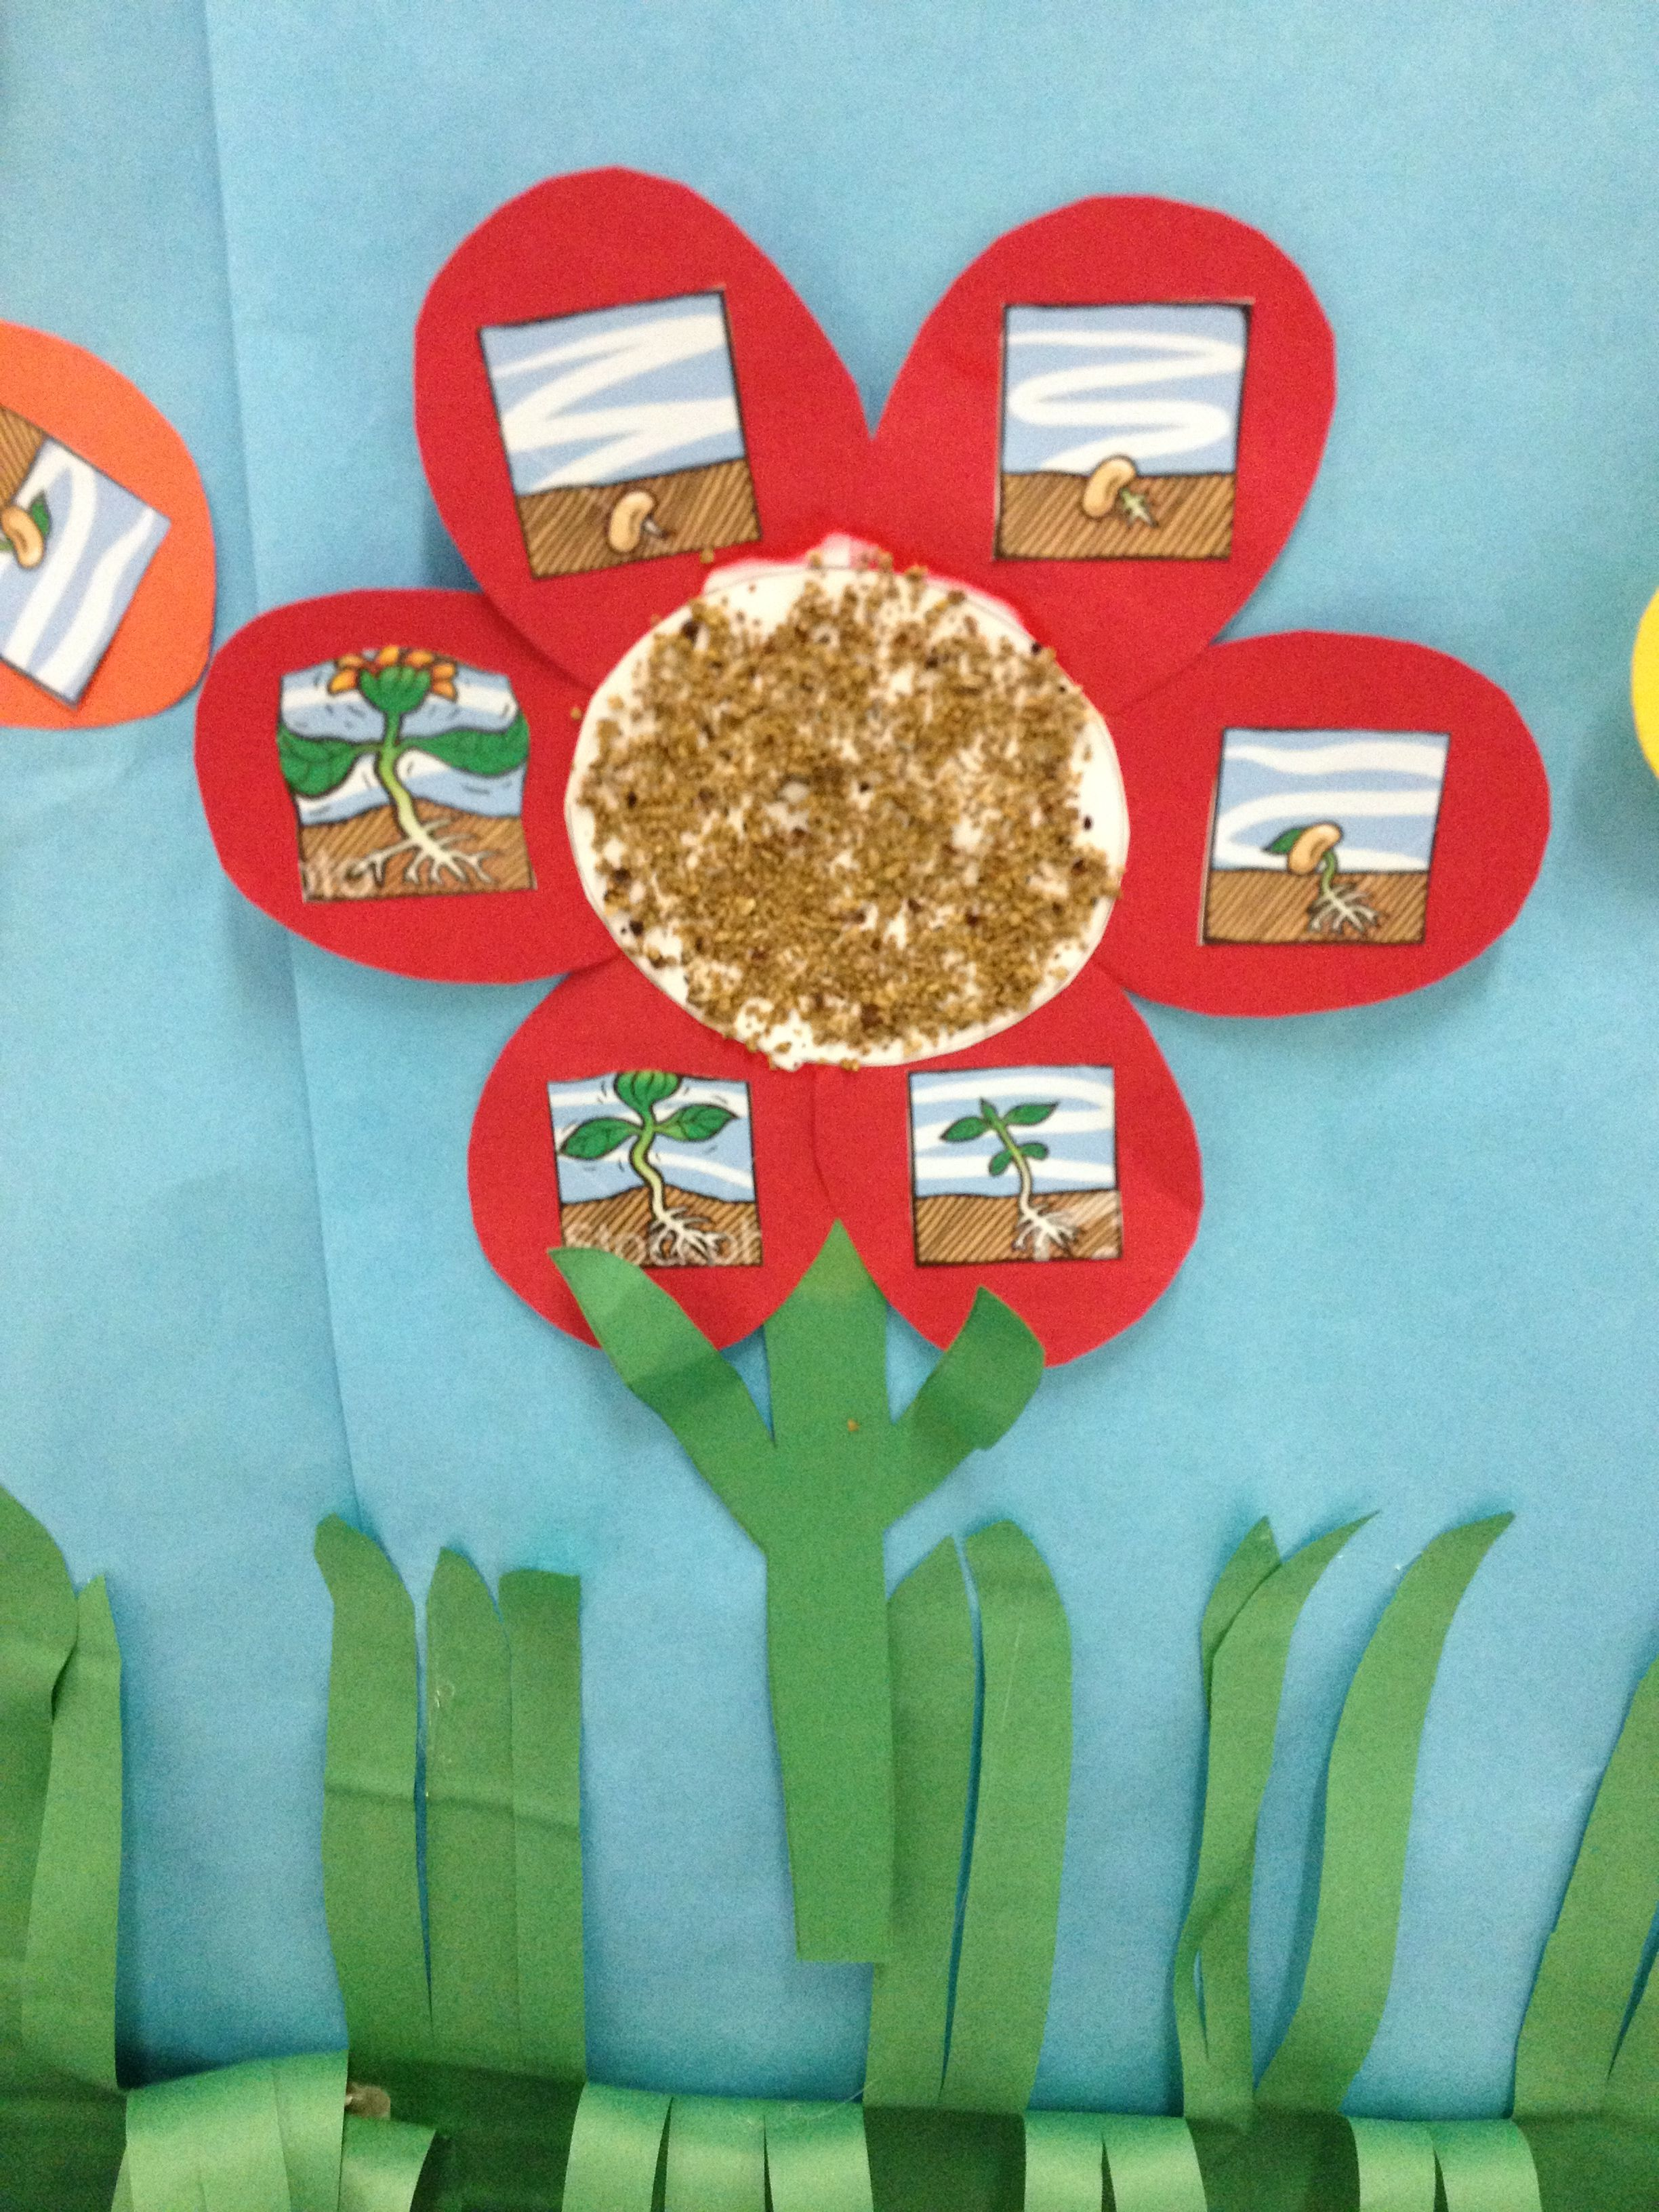 Plant Cycle Craft Here Is A Fun Way To Display The Plant Cycle For Your Spring Garden The